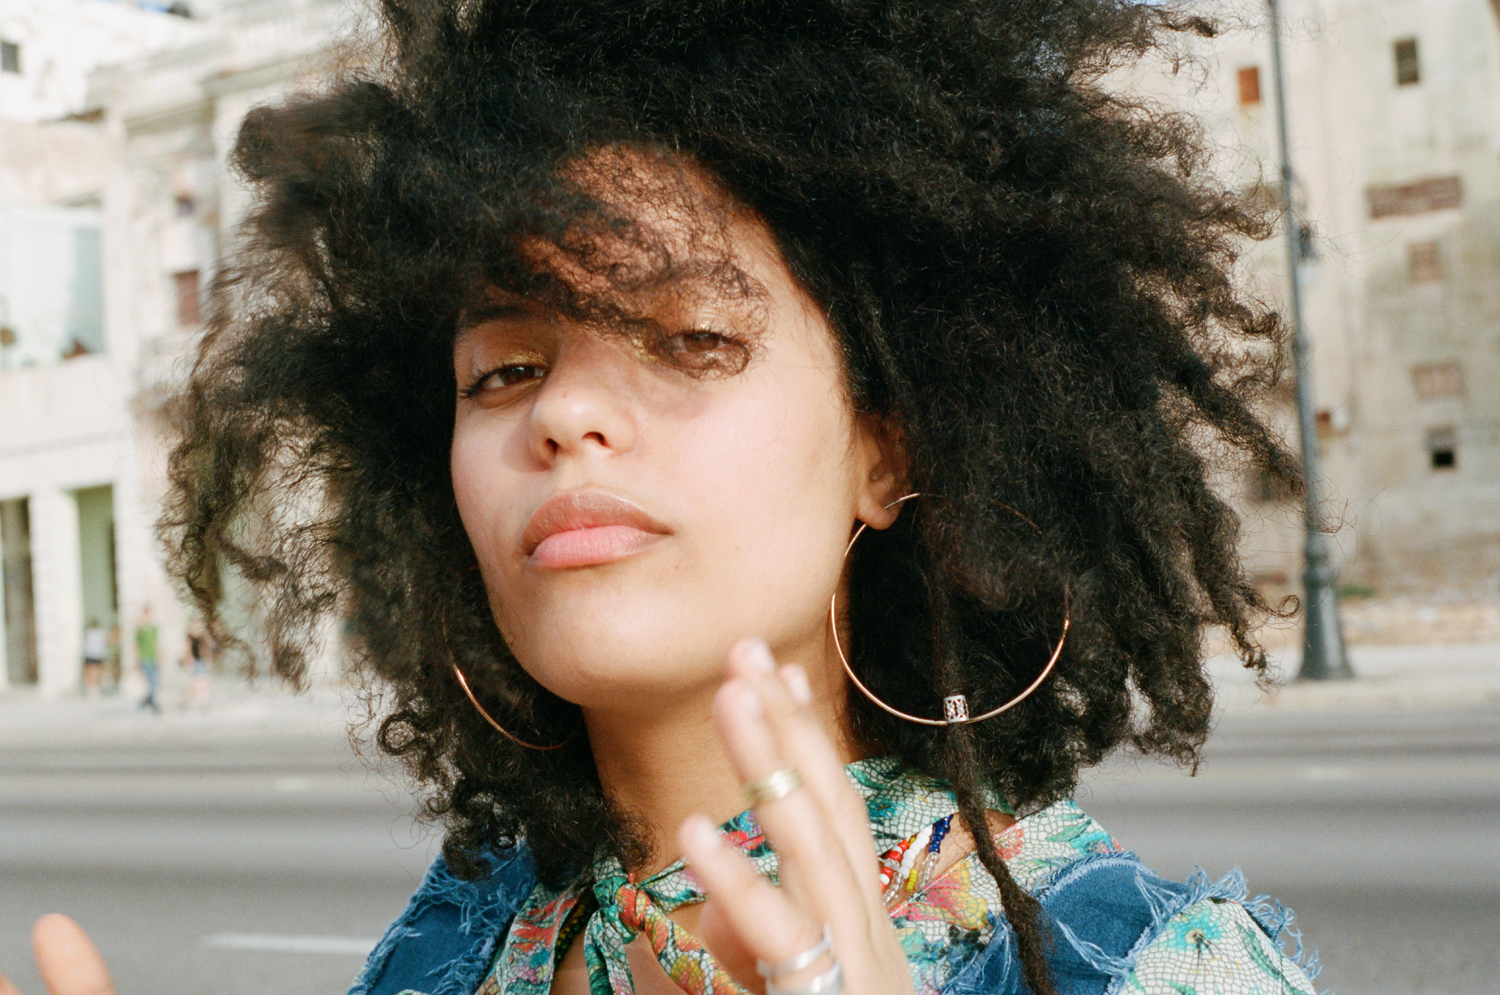 amber_mahoney_ibeyi_fader_magazine_cuba_film_photography_013.jpg